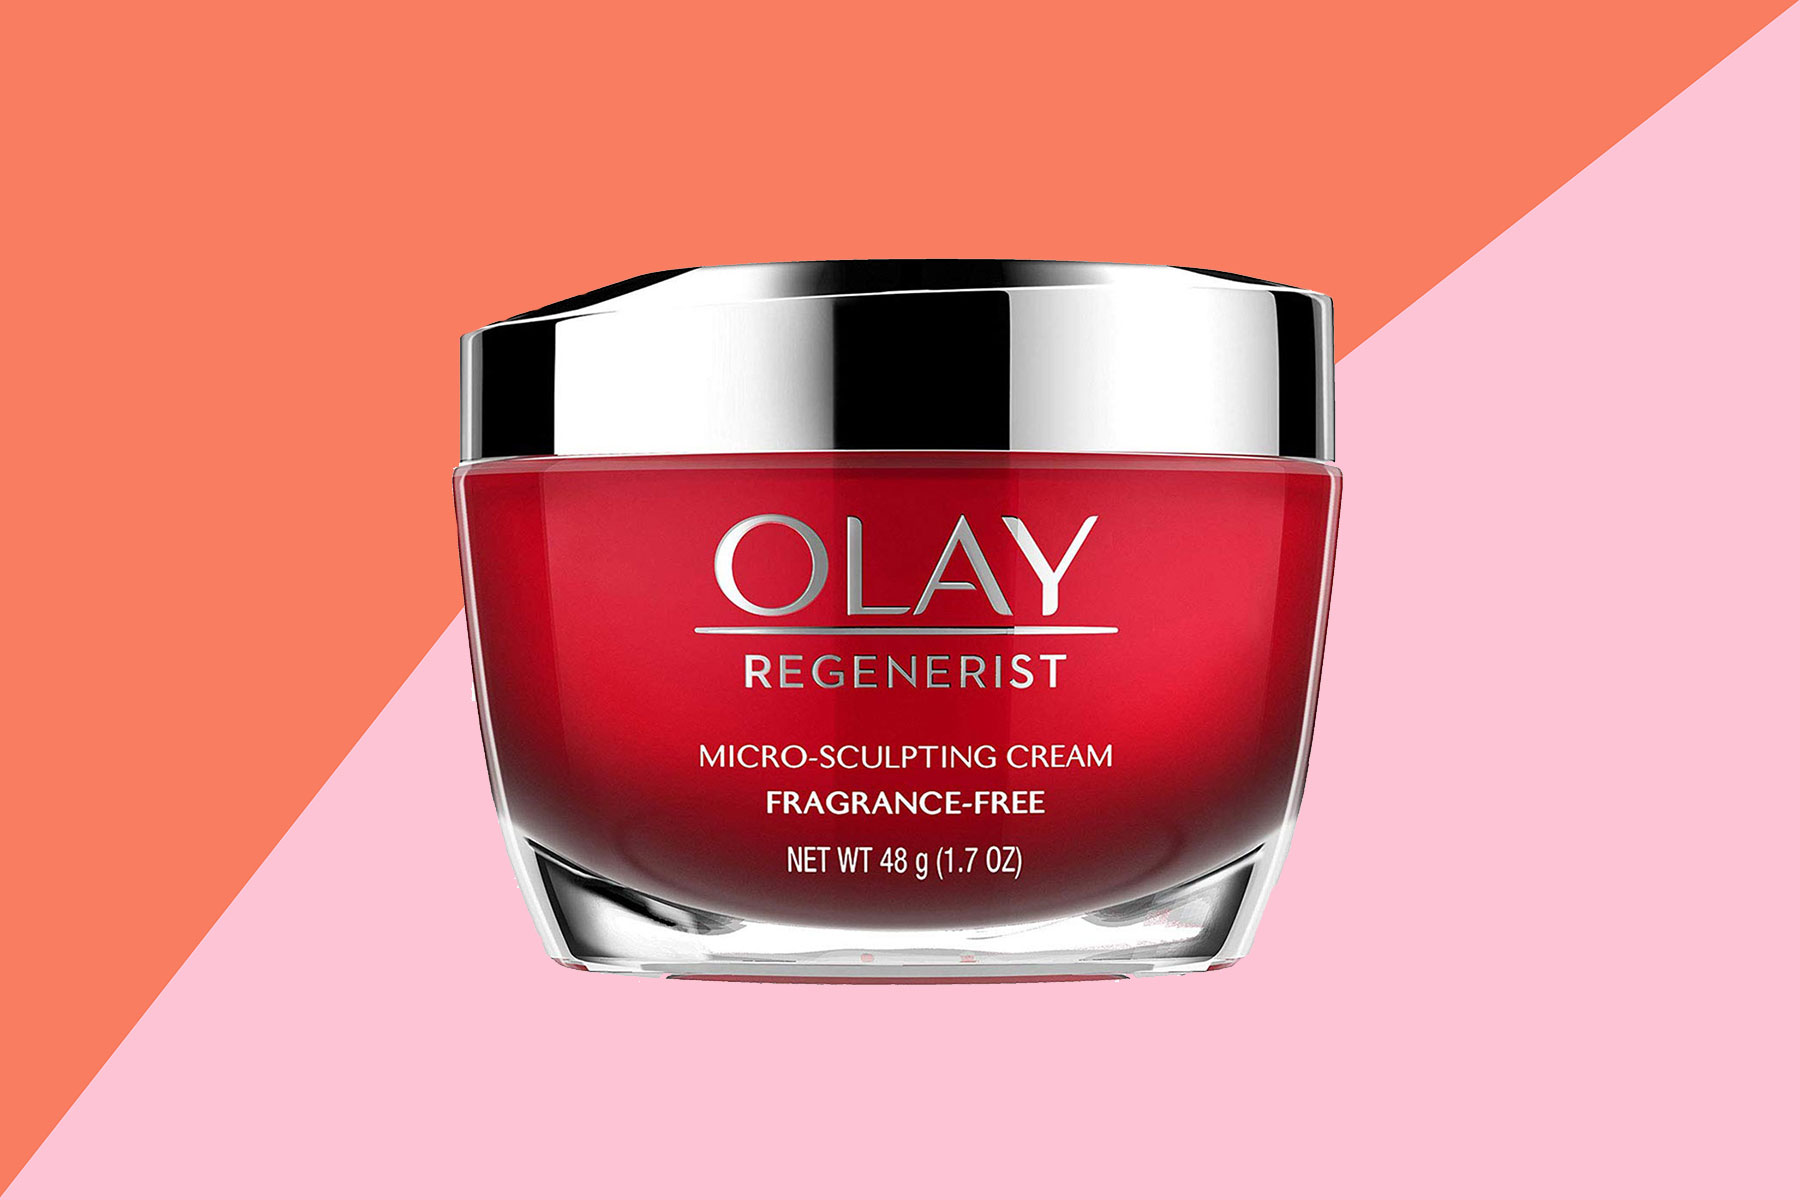 1 Billion Jars Of Olay Regenerist Face Cream Have Been Sold Real Simple